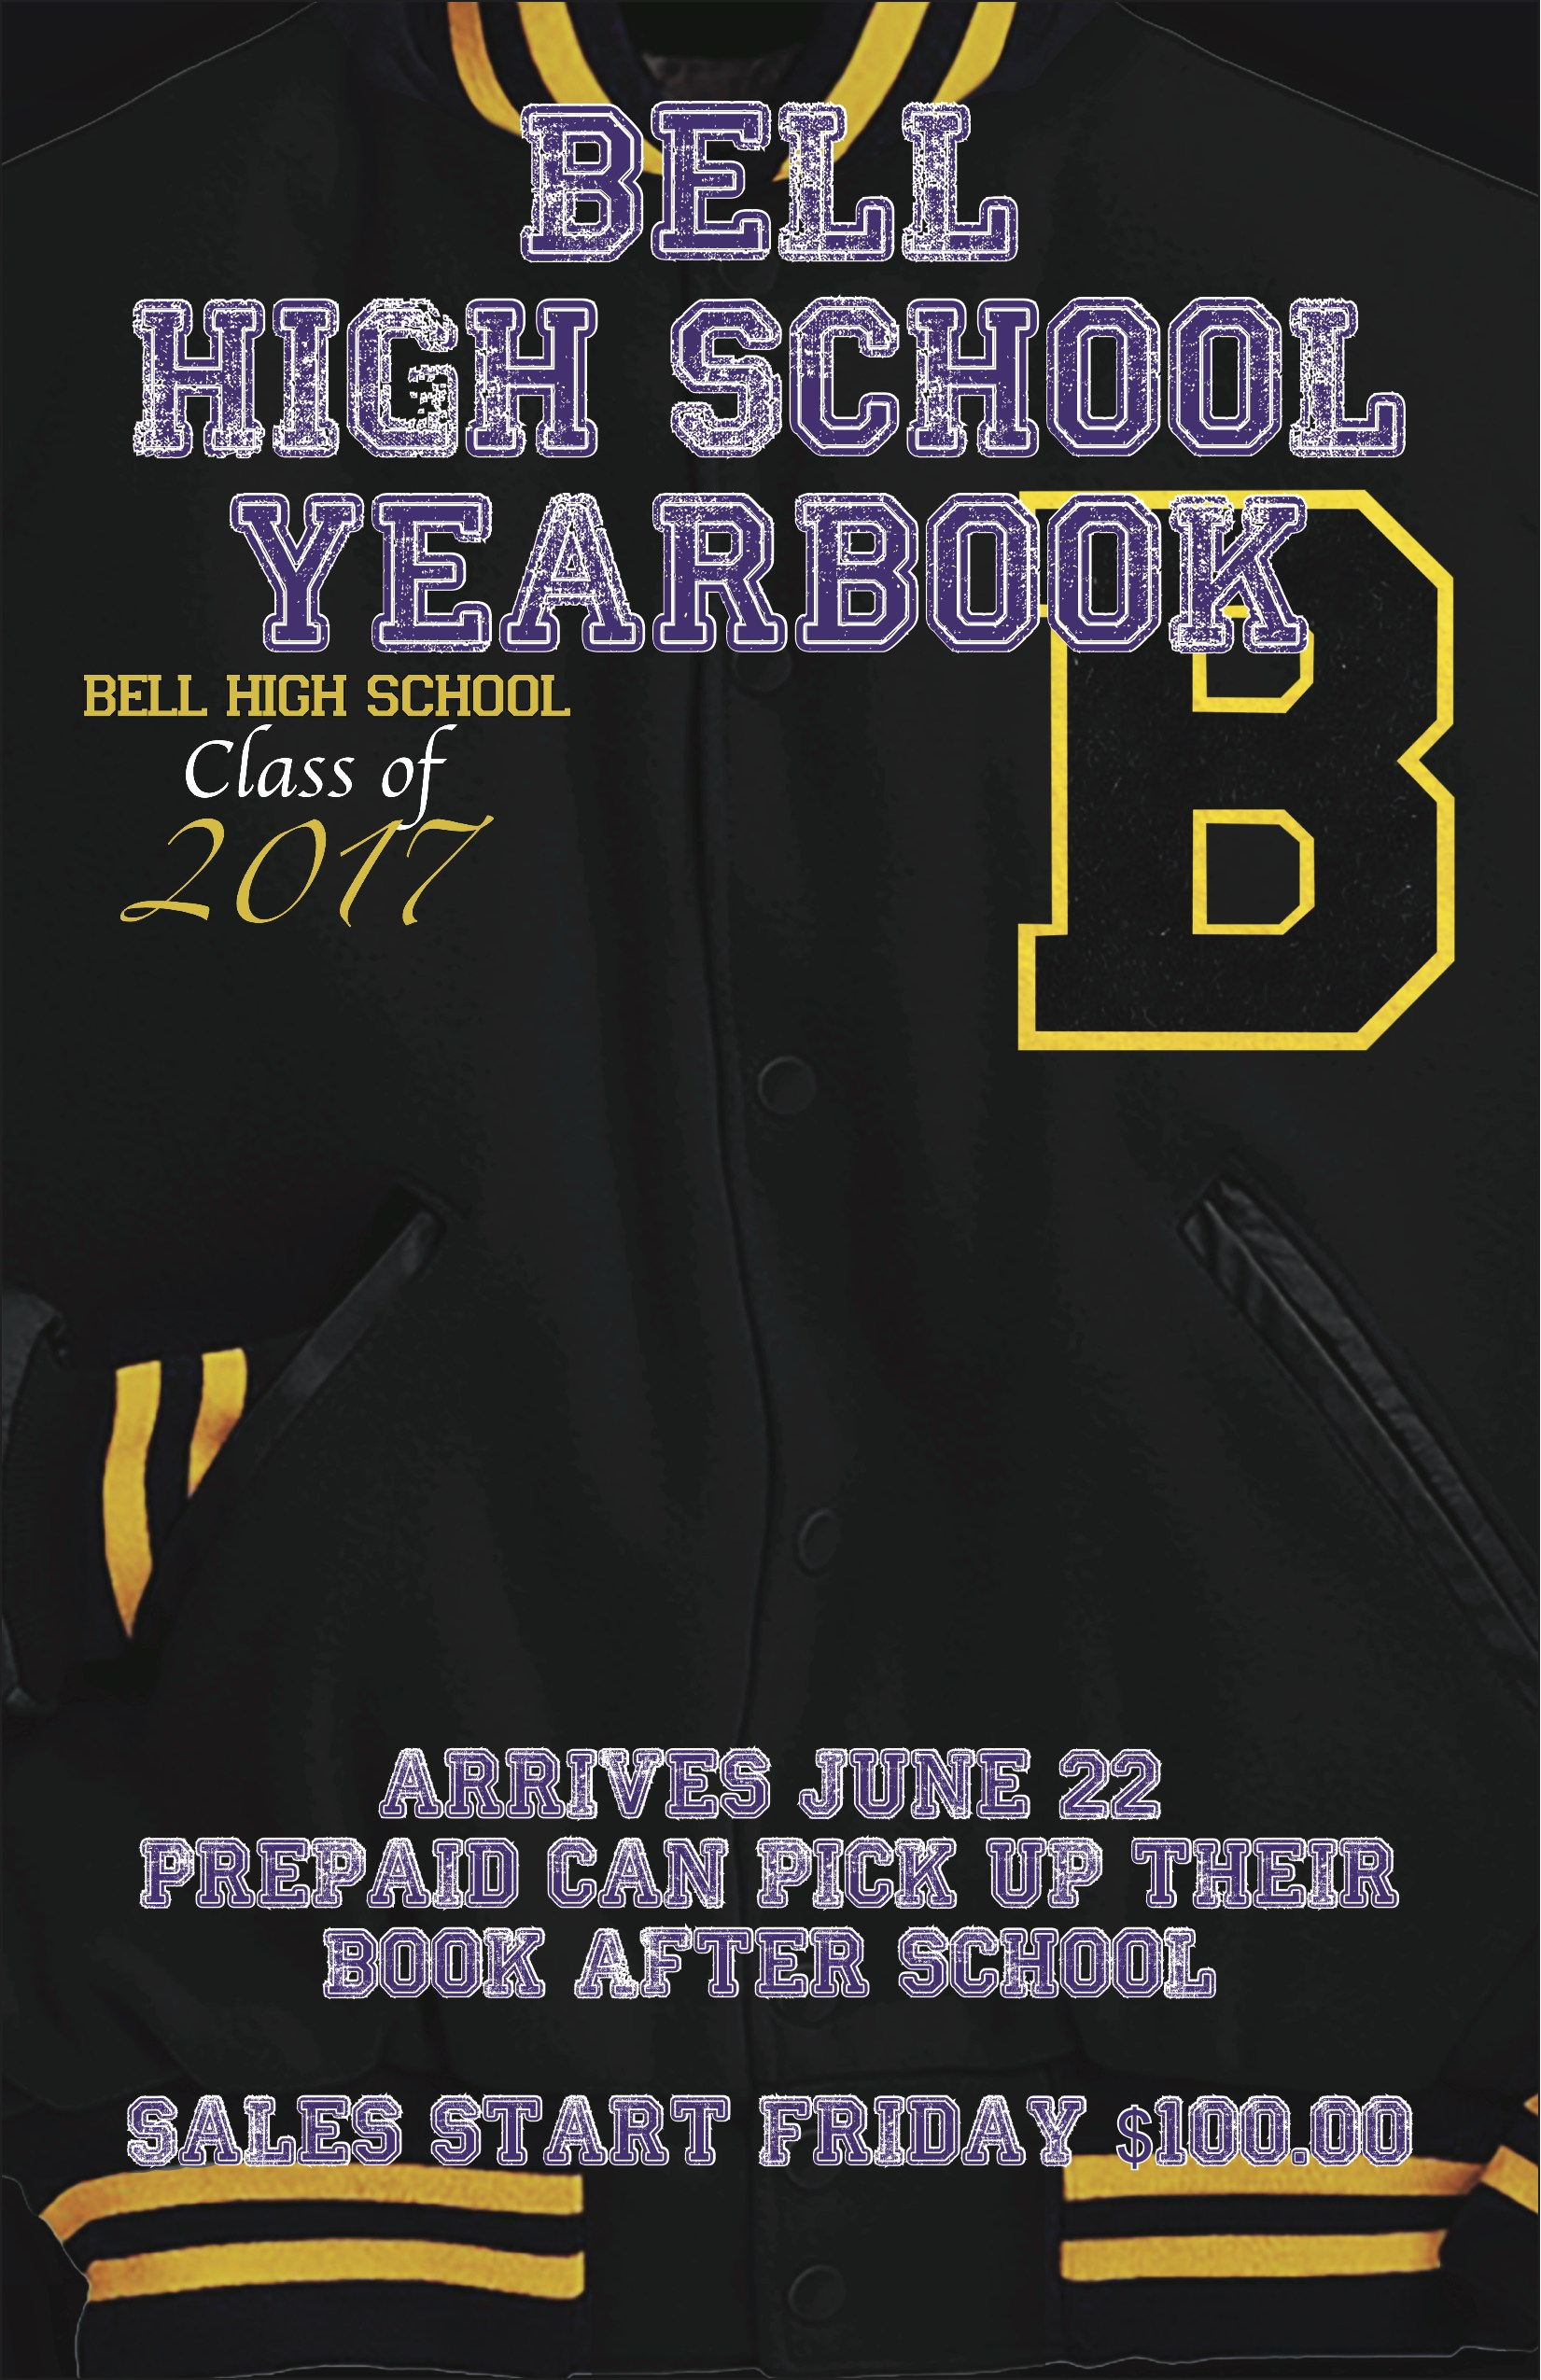 2017 Yearbook Now On Sale!